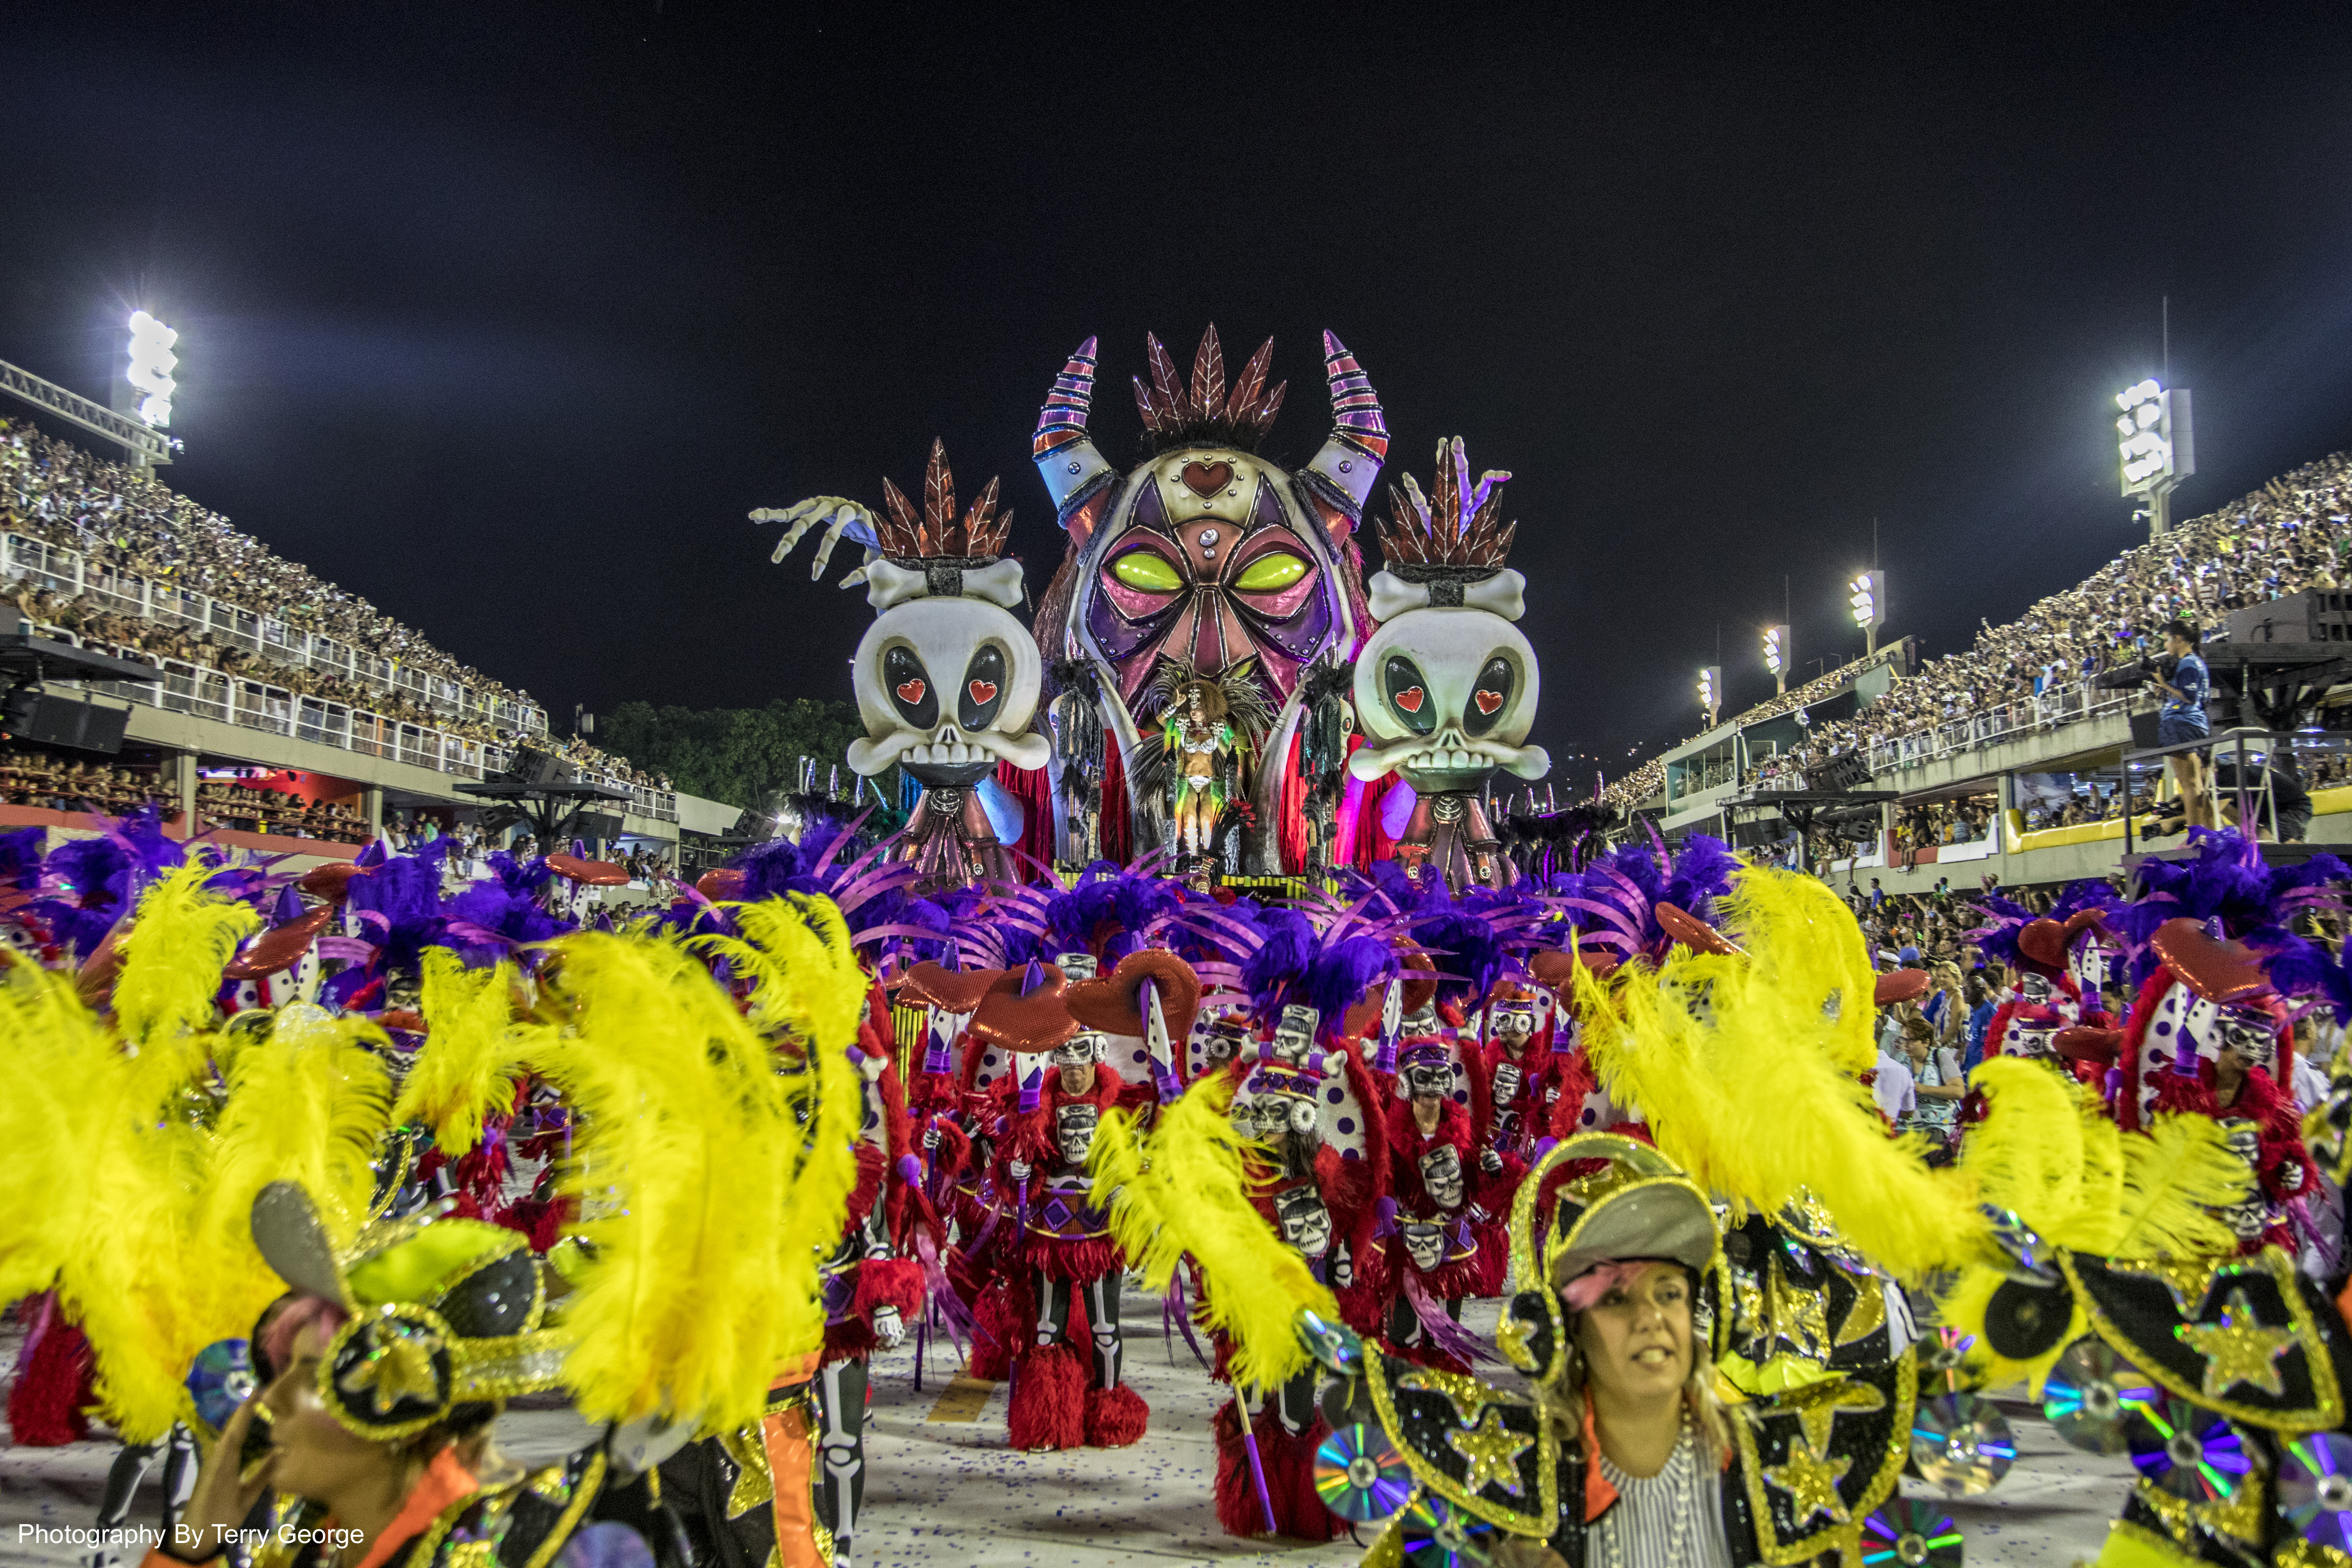 Rio de Janeiro's Carnival - 7 Festivals From Around The World To Add To Your Bucket List